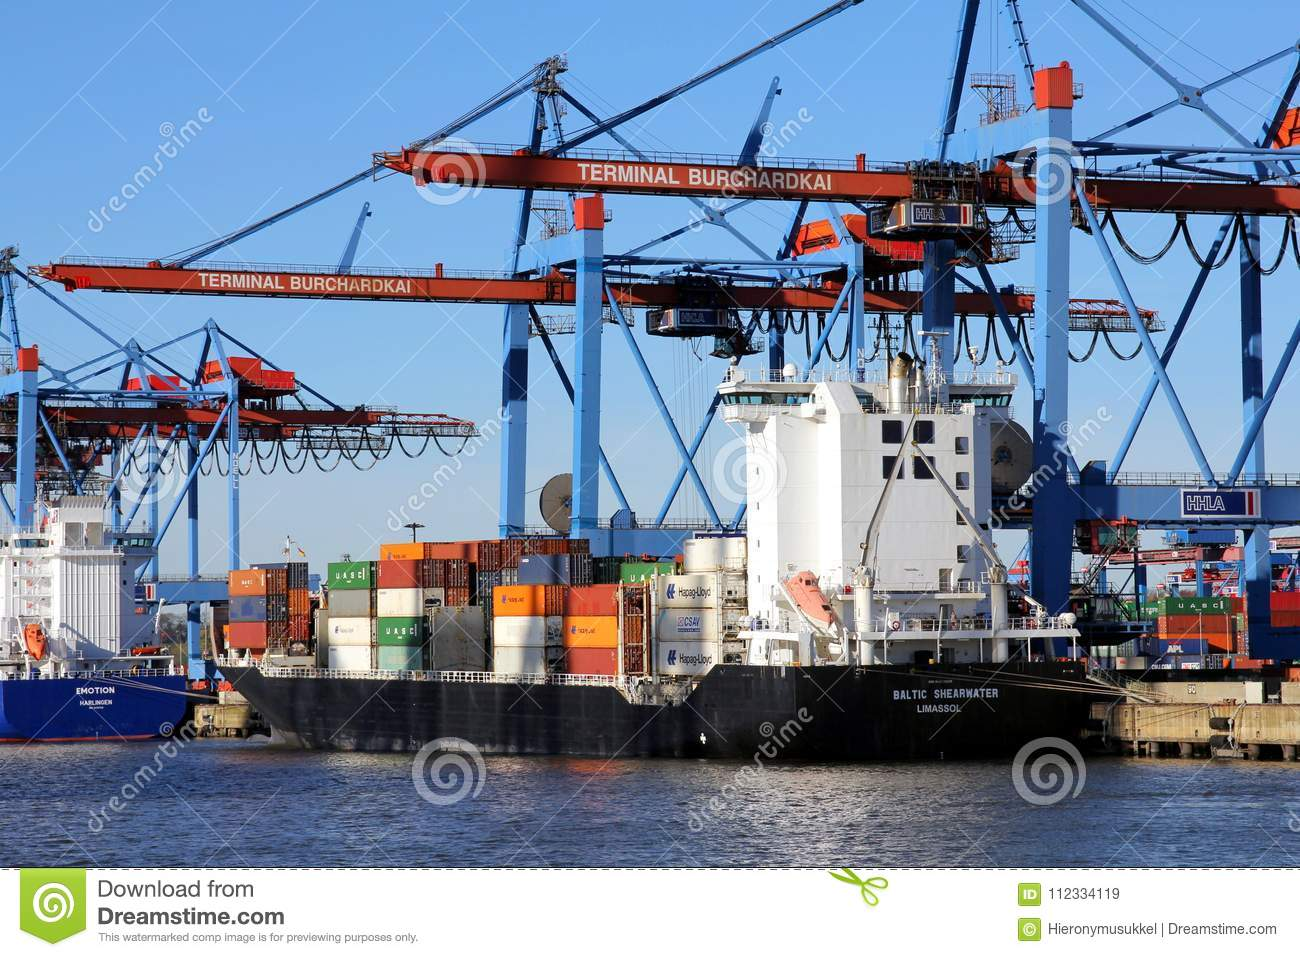 Industrial Air Pollution Control Equipment For Vessel